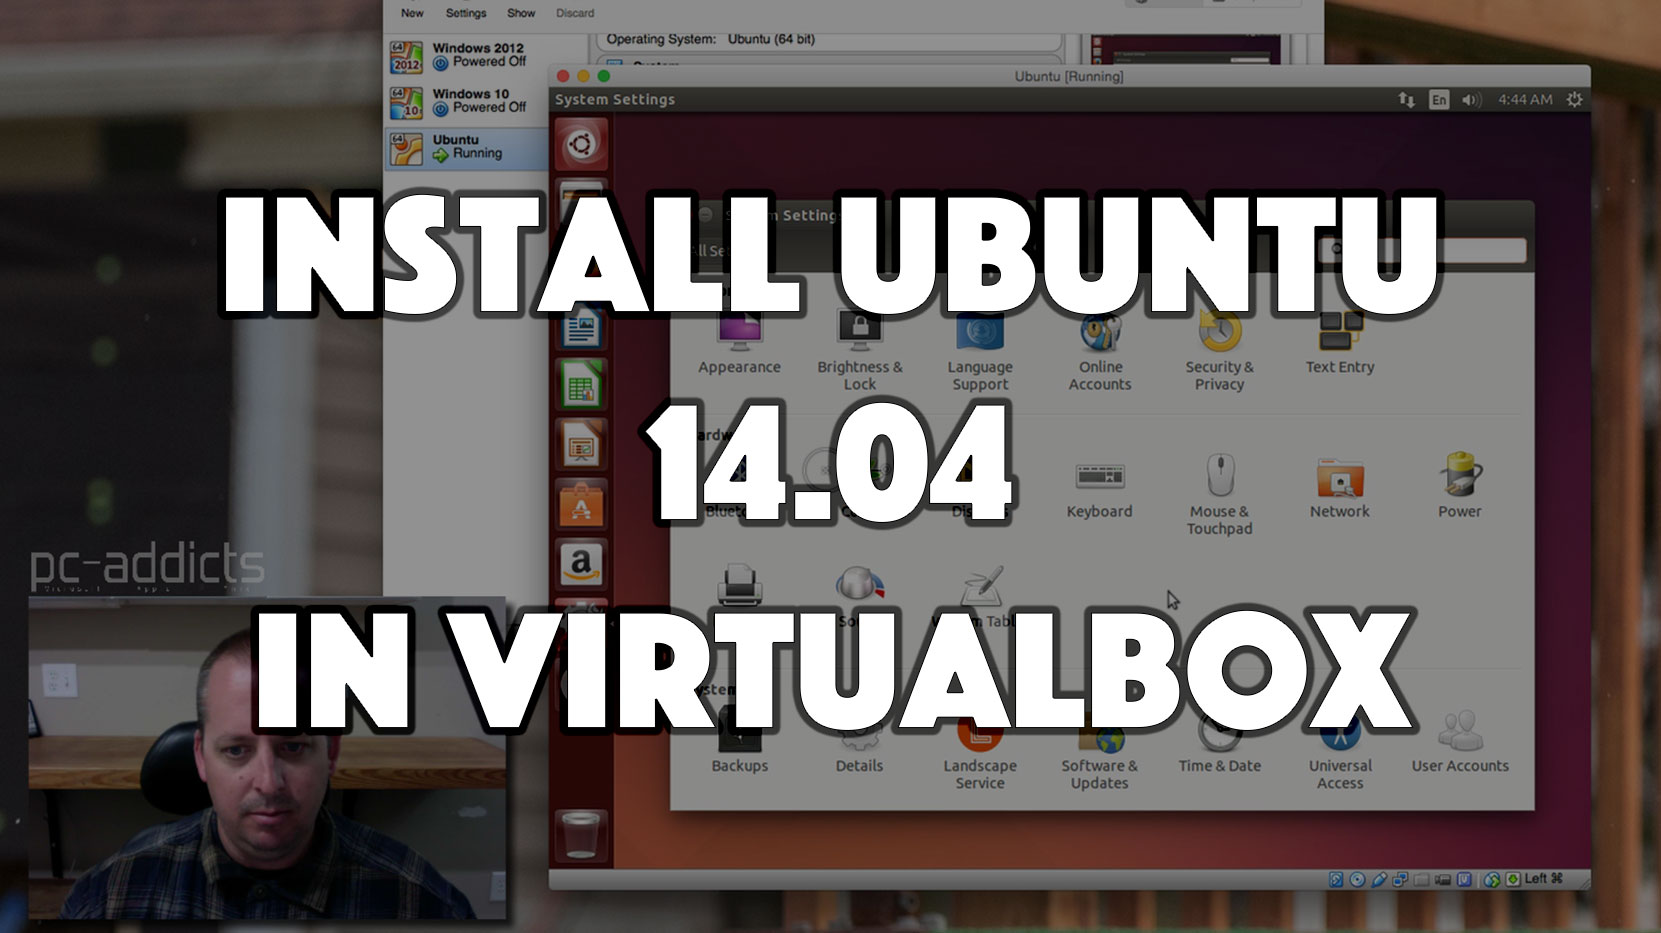 Install Ubuntu 14.04 in Virtualbox